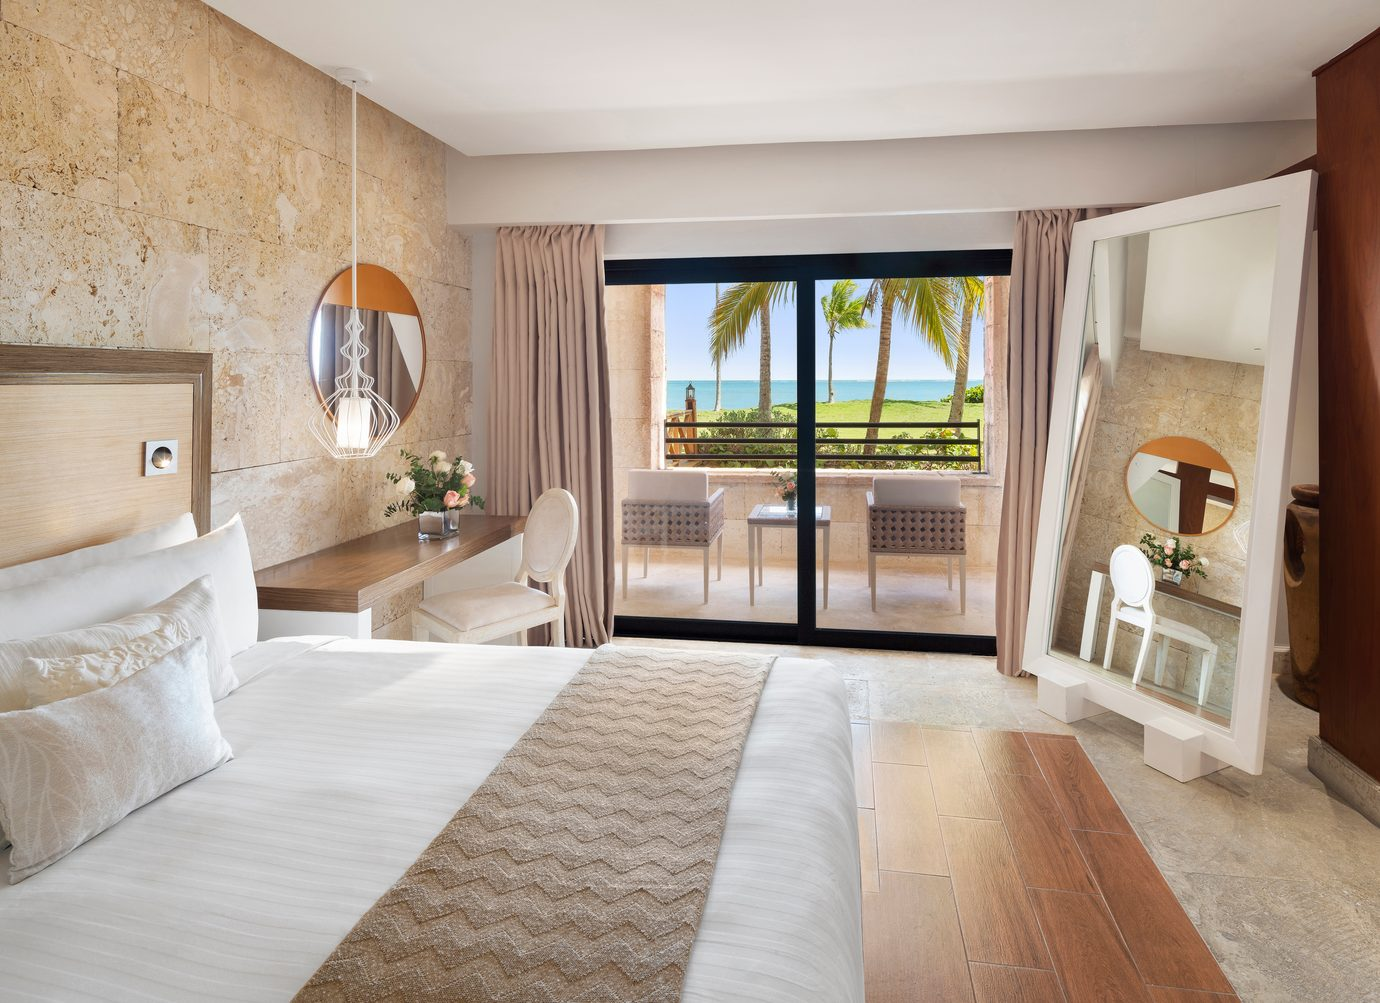 suite with private balcony looking over water and palm trees